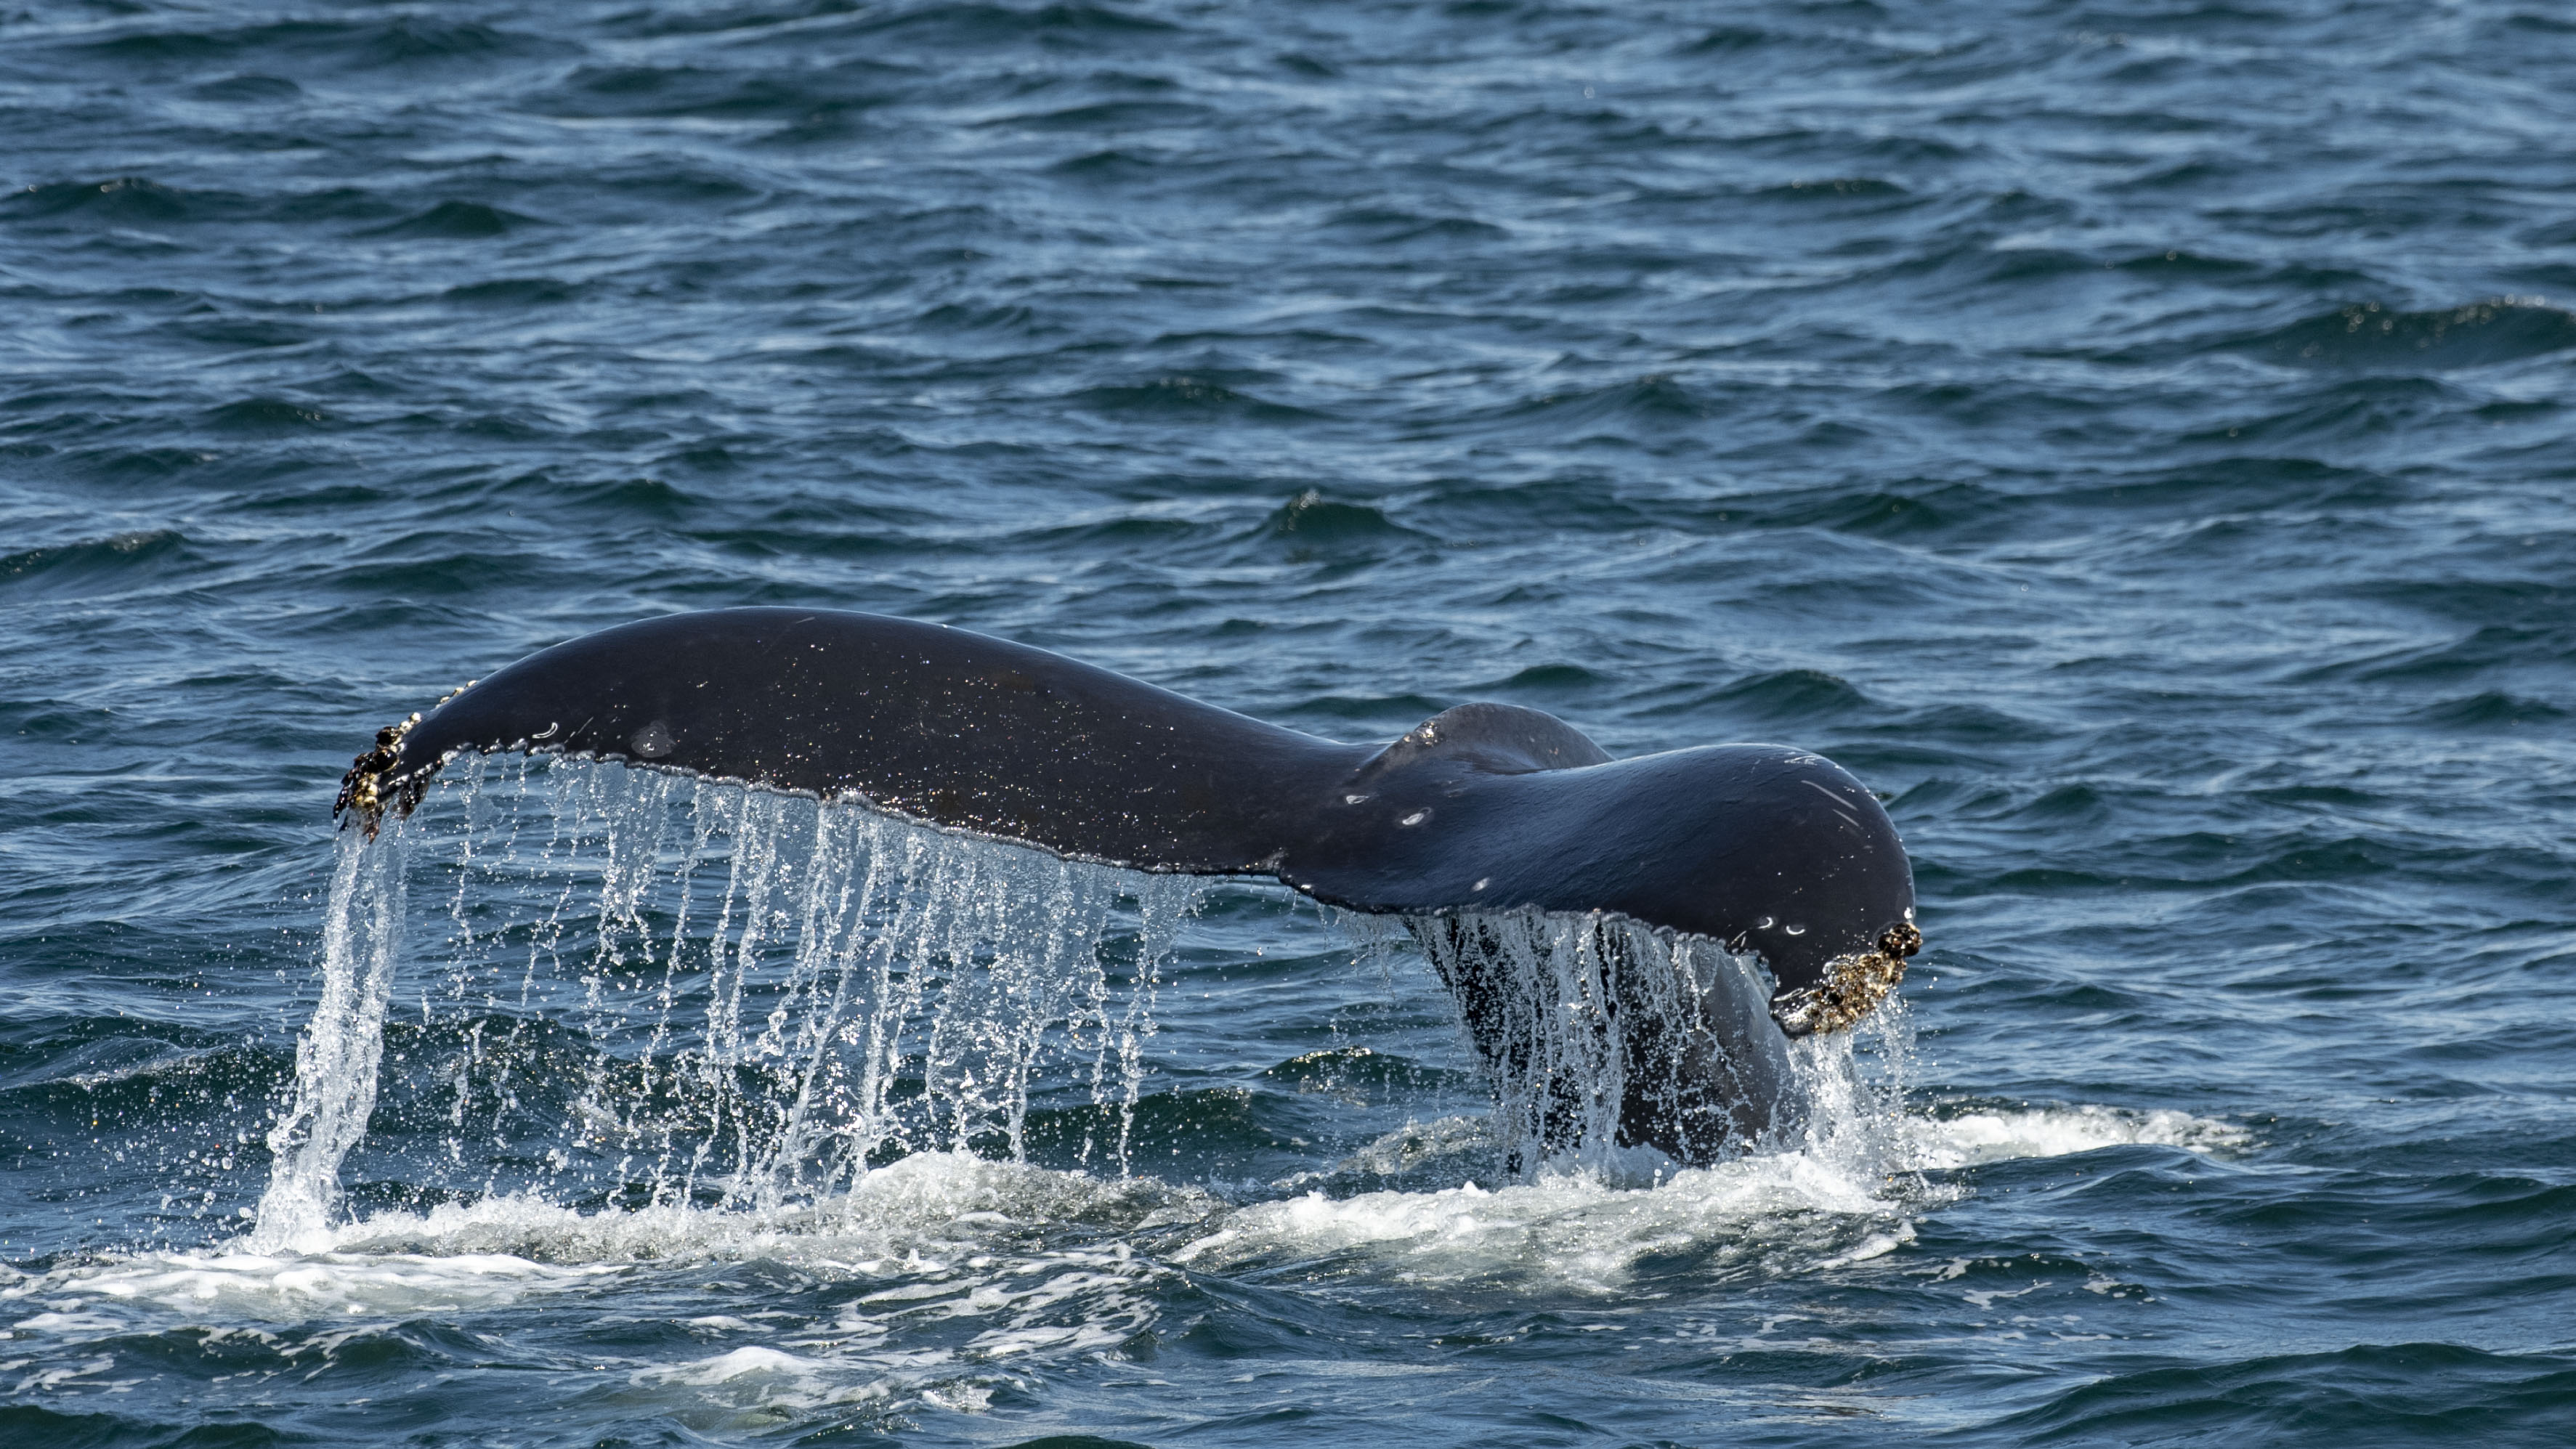 https://res.cloudinary.com/pacific-coastal-cruises-and-tours/image/upload/v1600896189/Wildlife_Whales_fge8lz.jpg